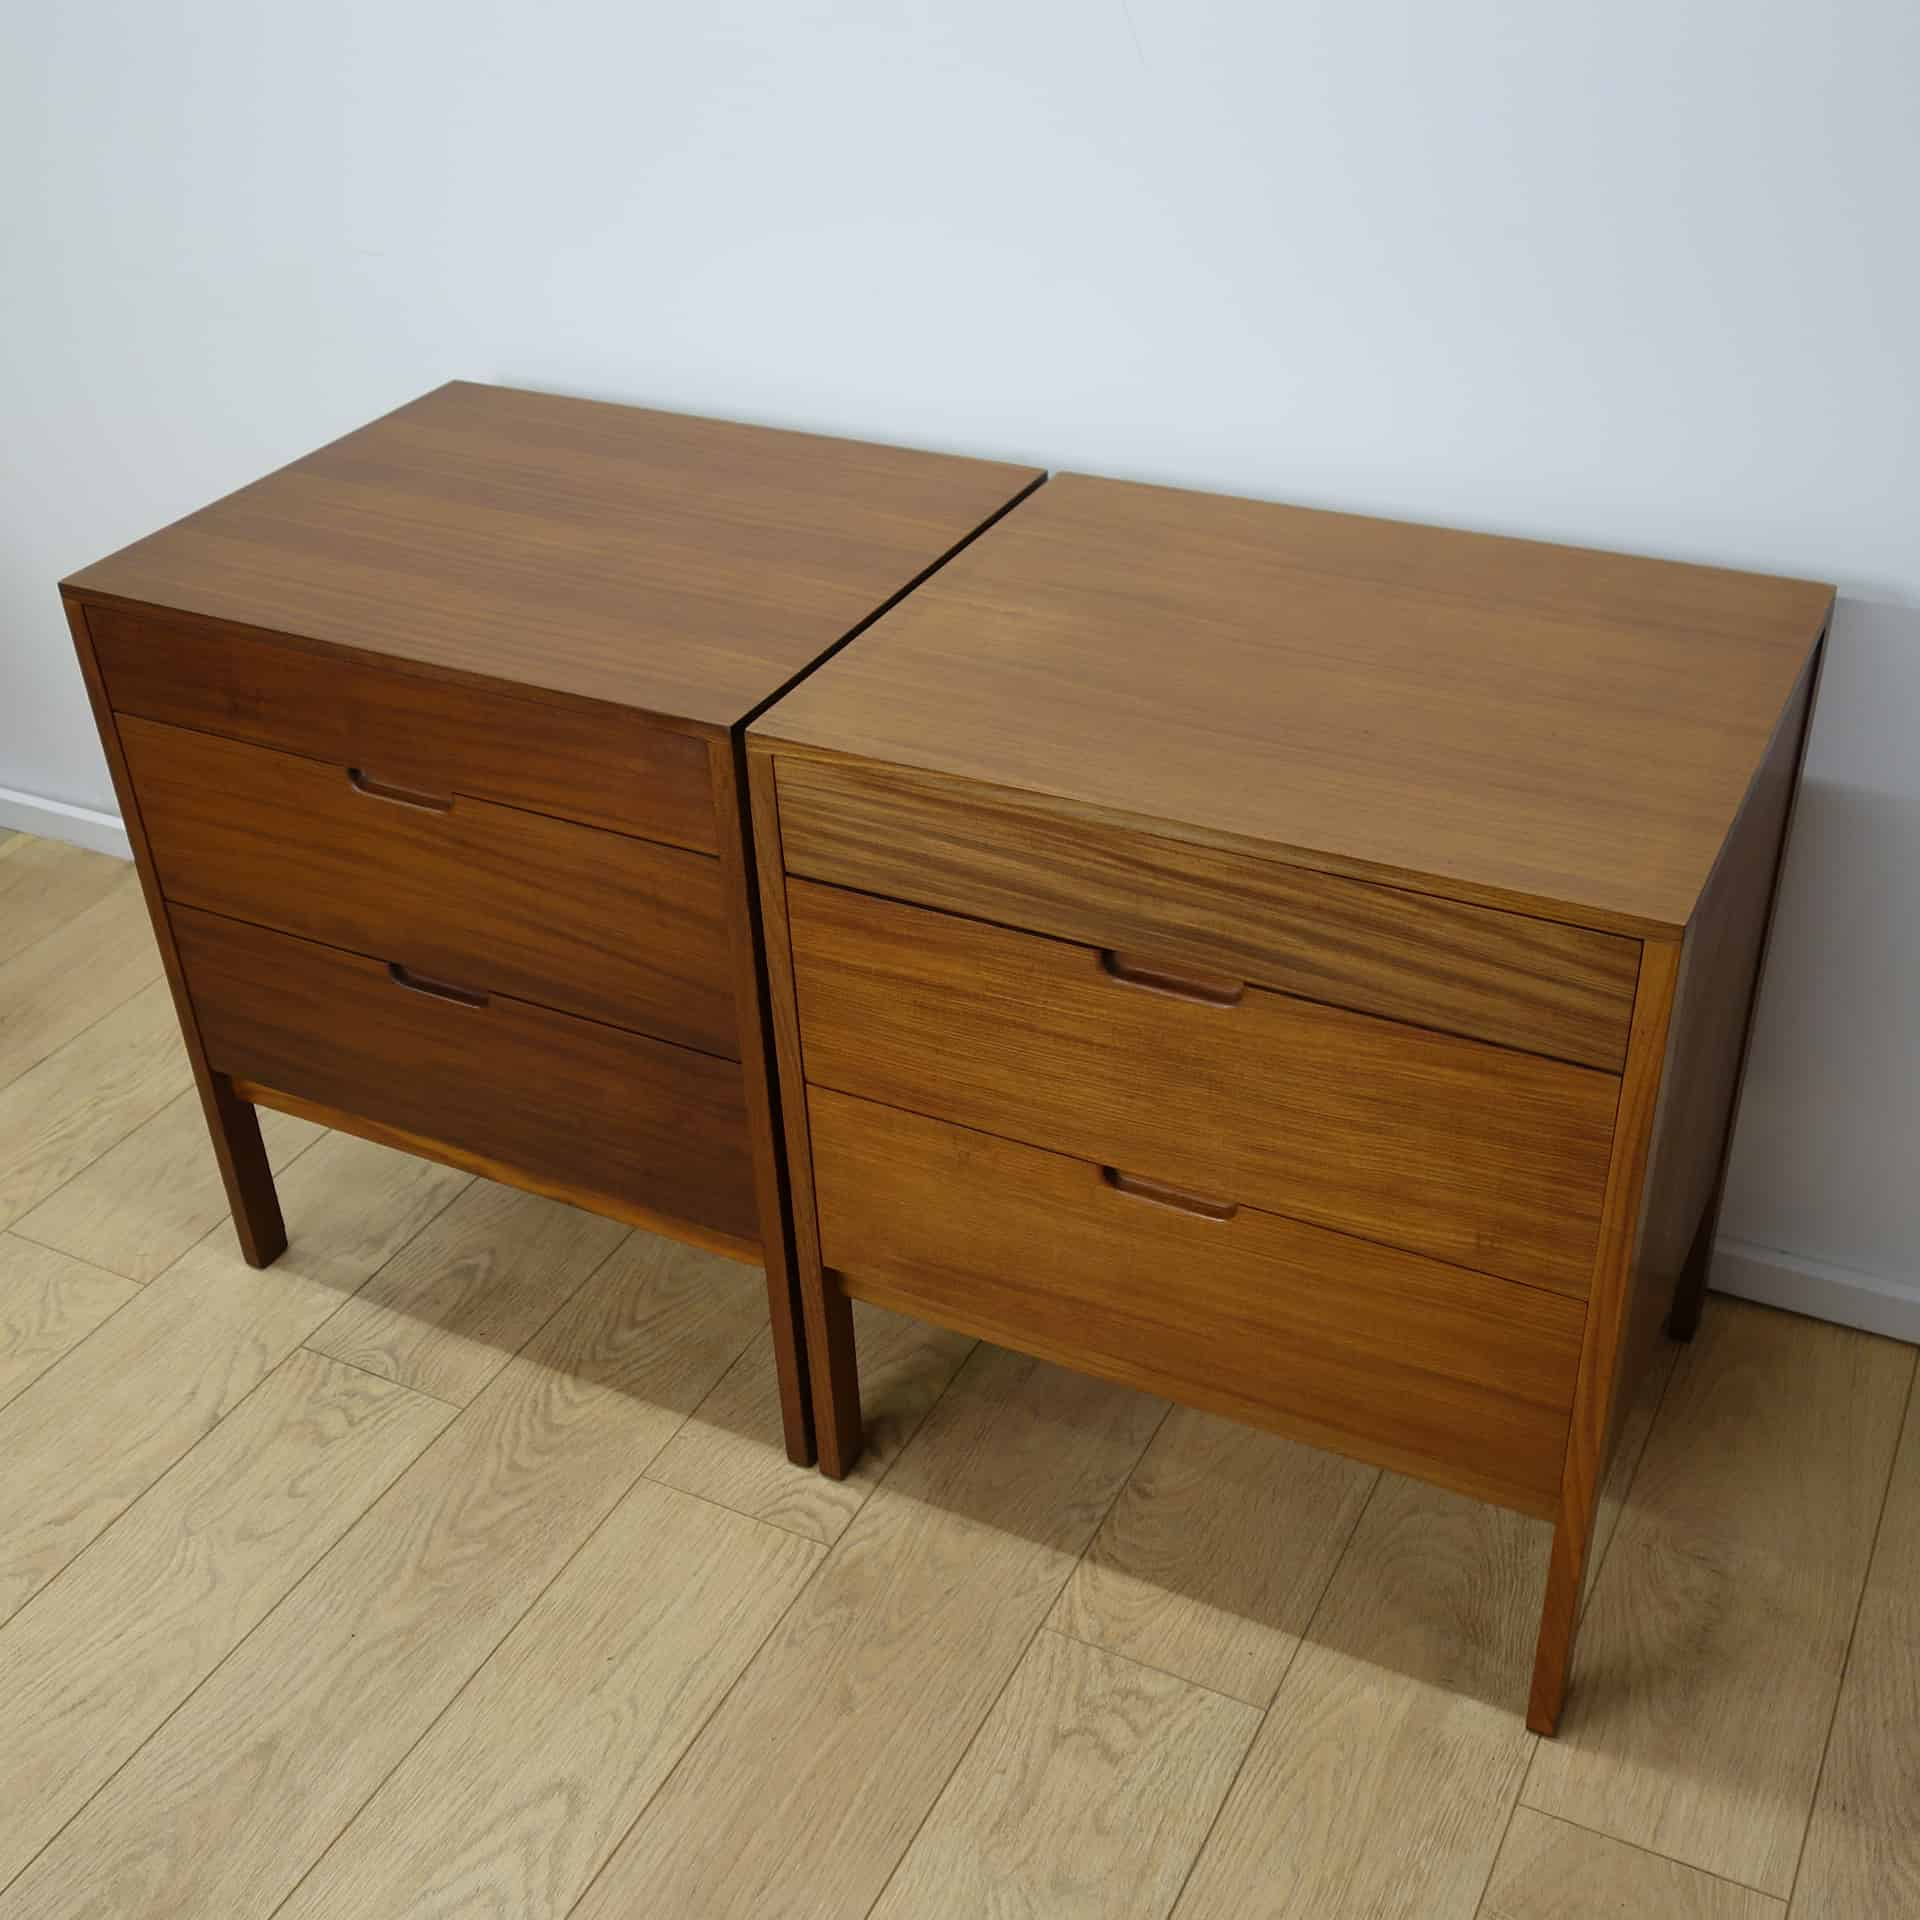 #6C4116  Small Bedroom Chests By Richard Hornby Price Sold A Small Afromosia with 1920x1920 px of Recommended Small Chests For Bedroom 19201920 save image @ avoidforclosure.info